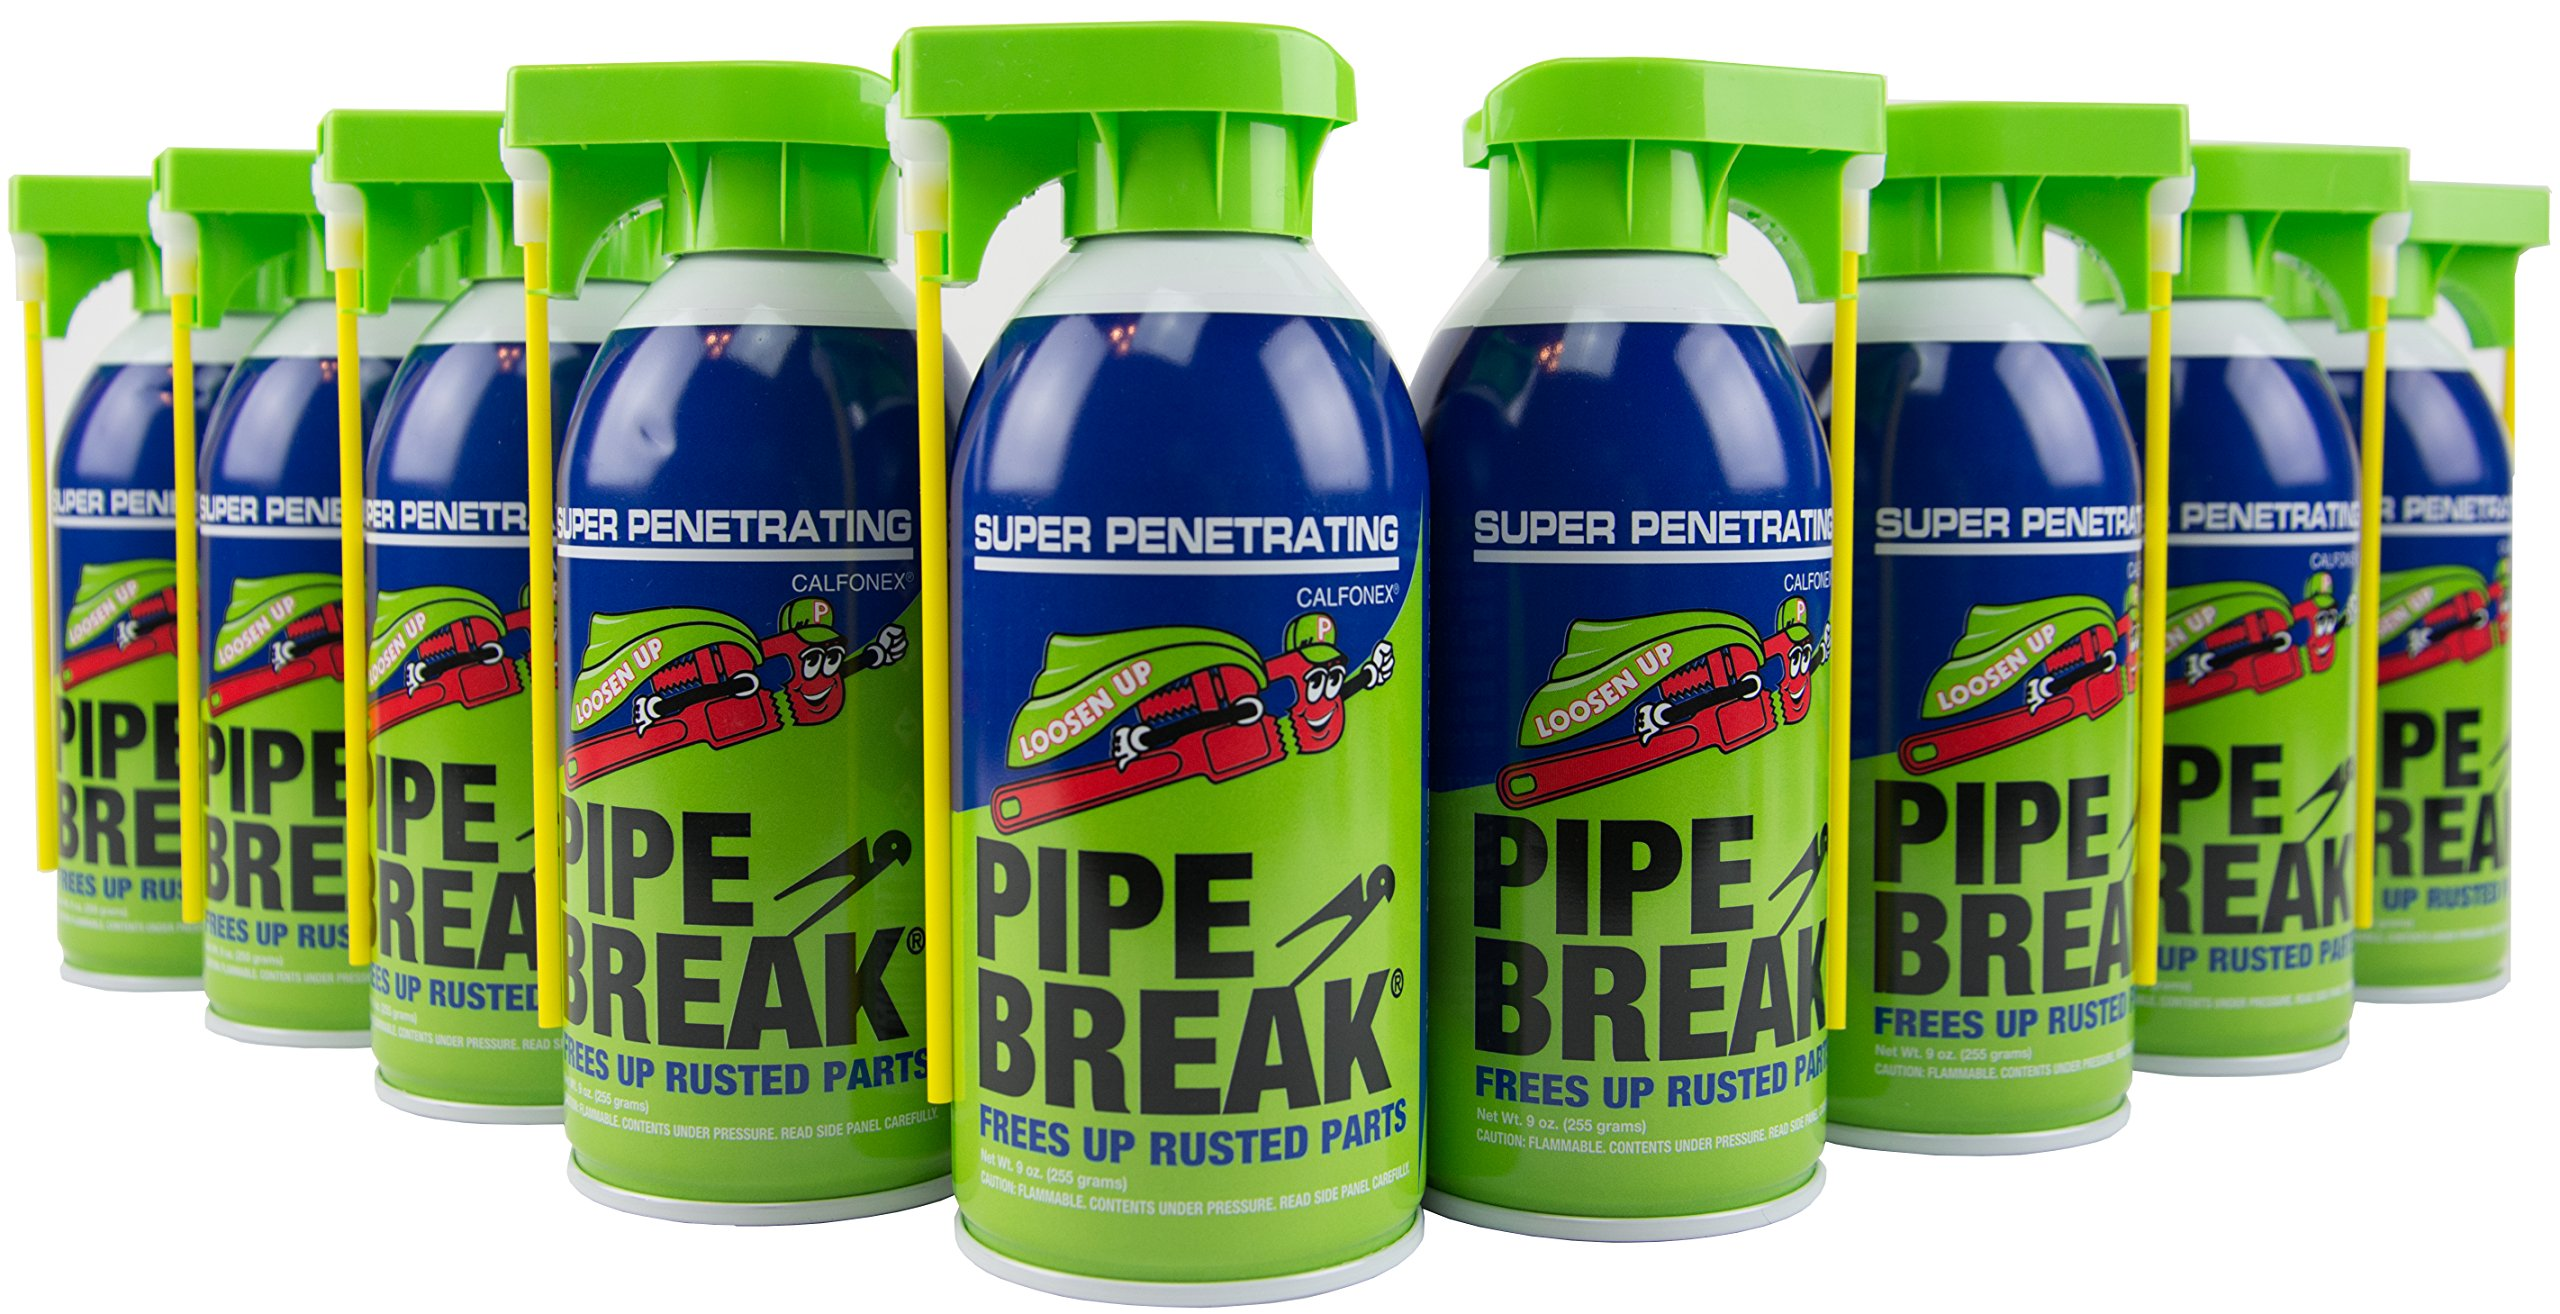 Case of 12 Pipe Break 9 oz. Penetrating Oil Aerosol Spray Cans with Attached Straw for Pinpoint Spray or Wide Stream Spray Penetrant for Rust - Low Odor - Free Rusted Nuts and Fasteners